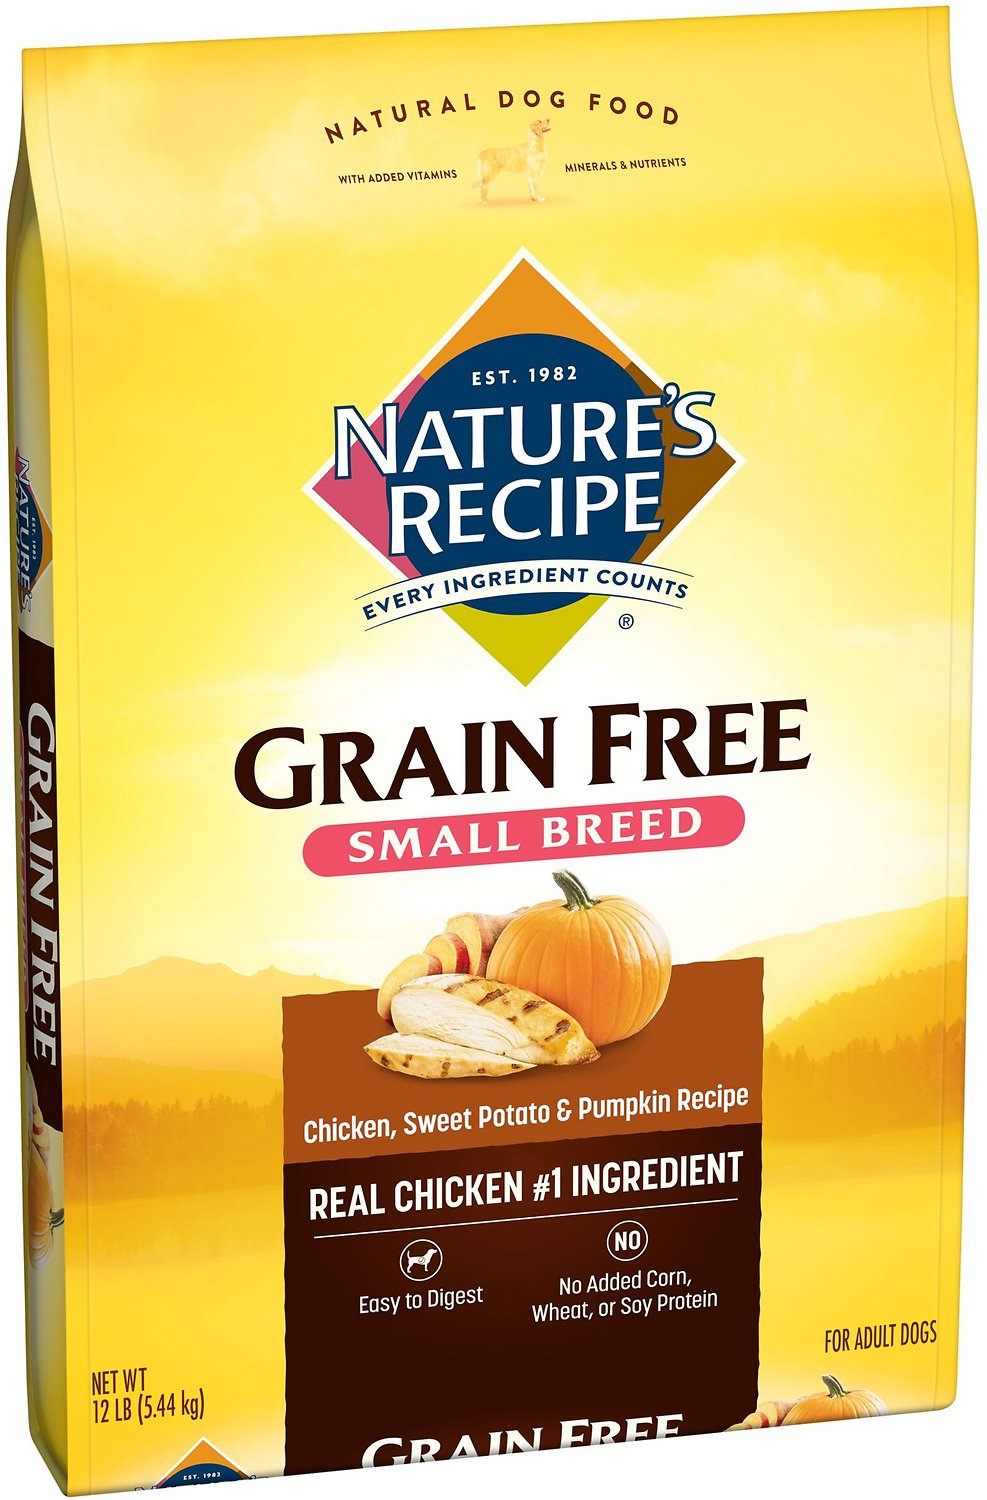 Natures recipe small breed grain free chicken sweet potato natures recipe small breed grain free chicken sweet potato pumpkin recipe dry dog food 12 lb bag chewy forumfinder Choice Image